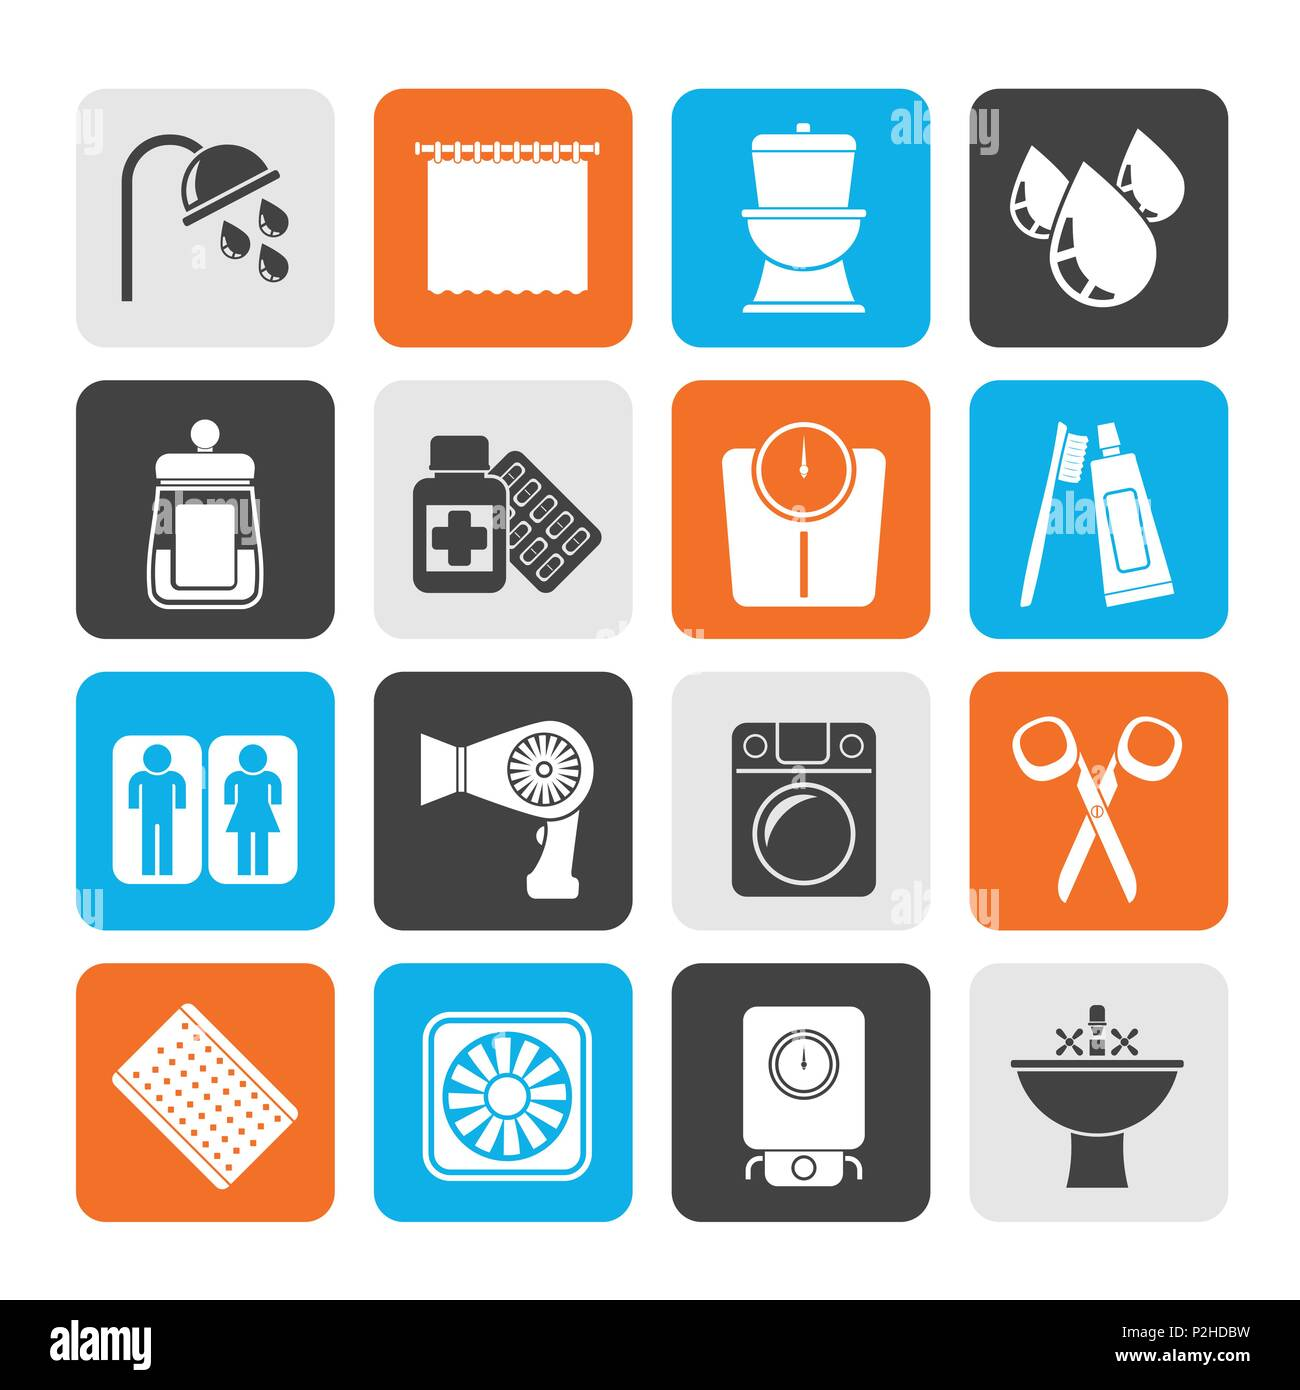 Silhouette Bathroom and Personal Care icons- vector icon set 2 - Stock Image